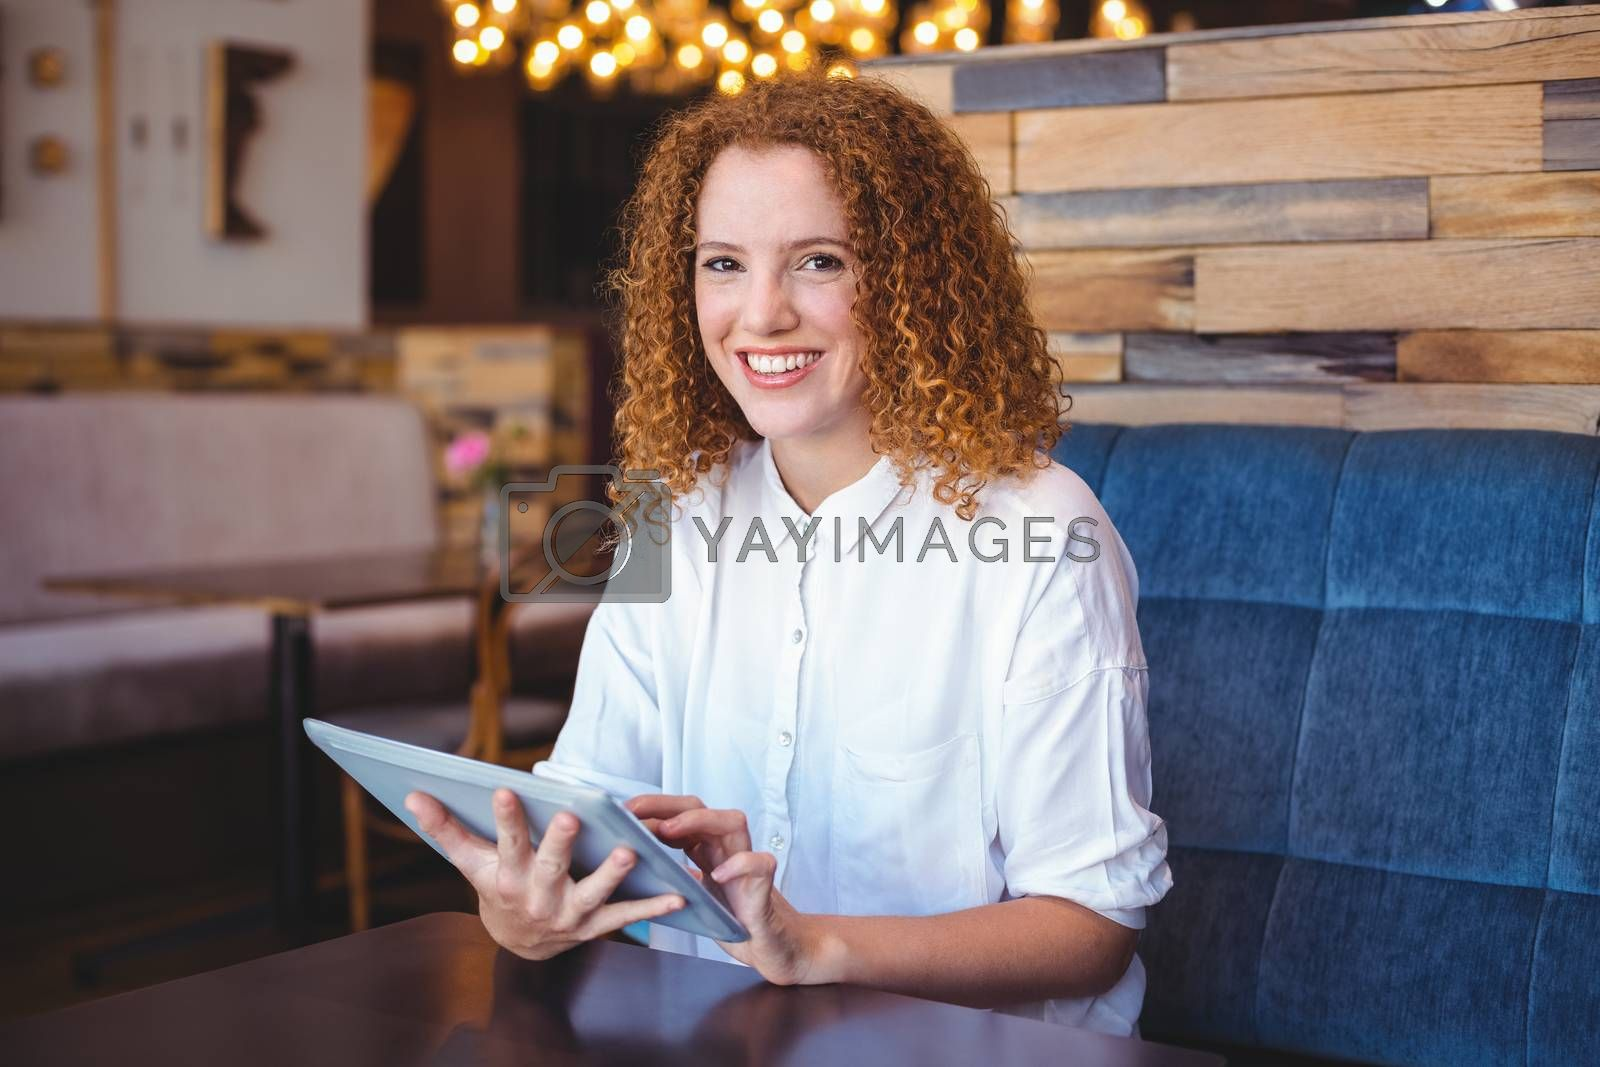 Royalty free image of Pretty girl using a small tablet at table by Wavebreakmedia